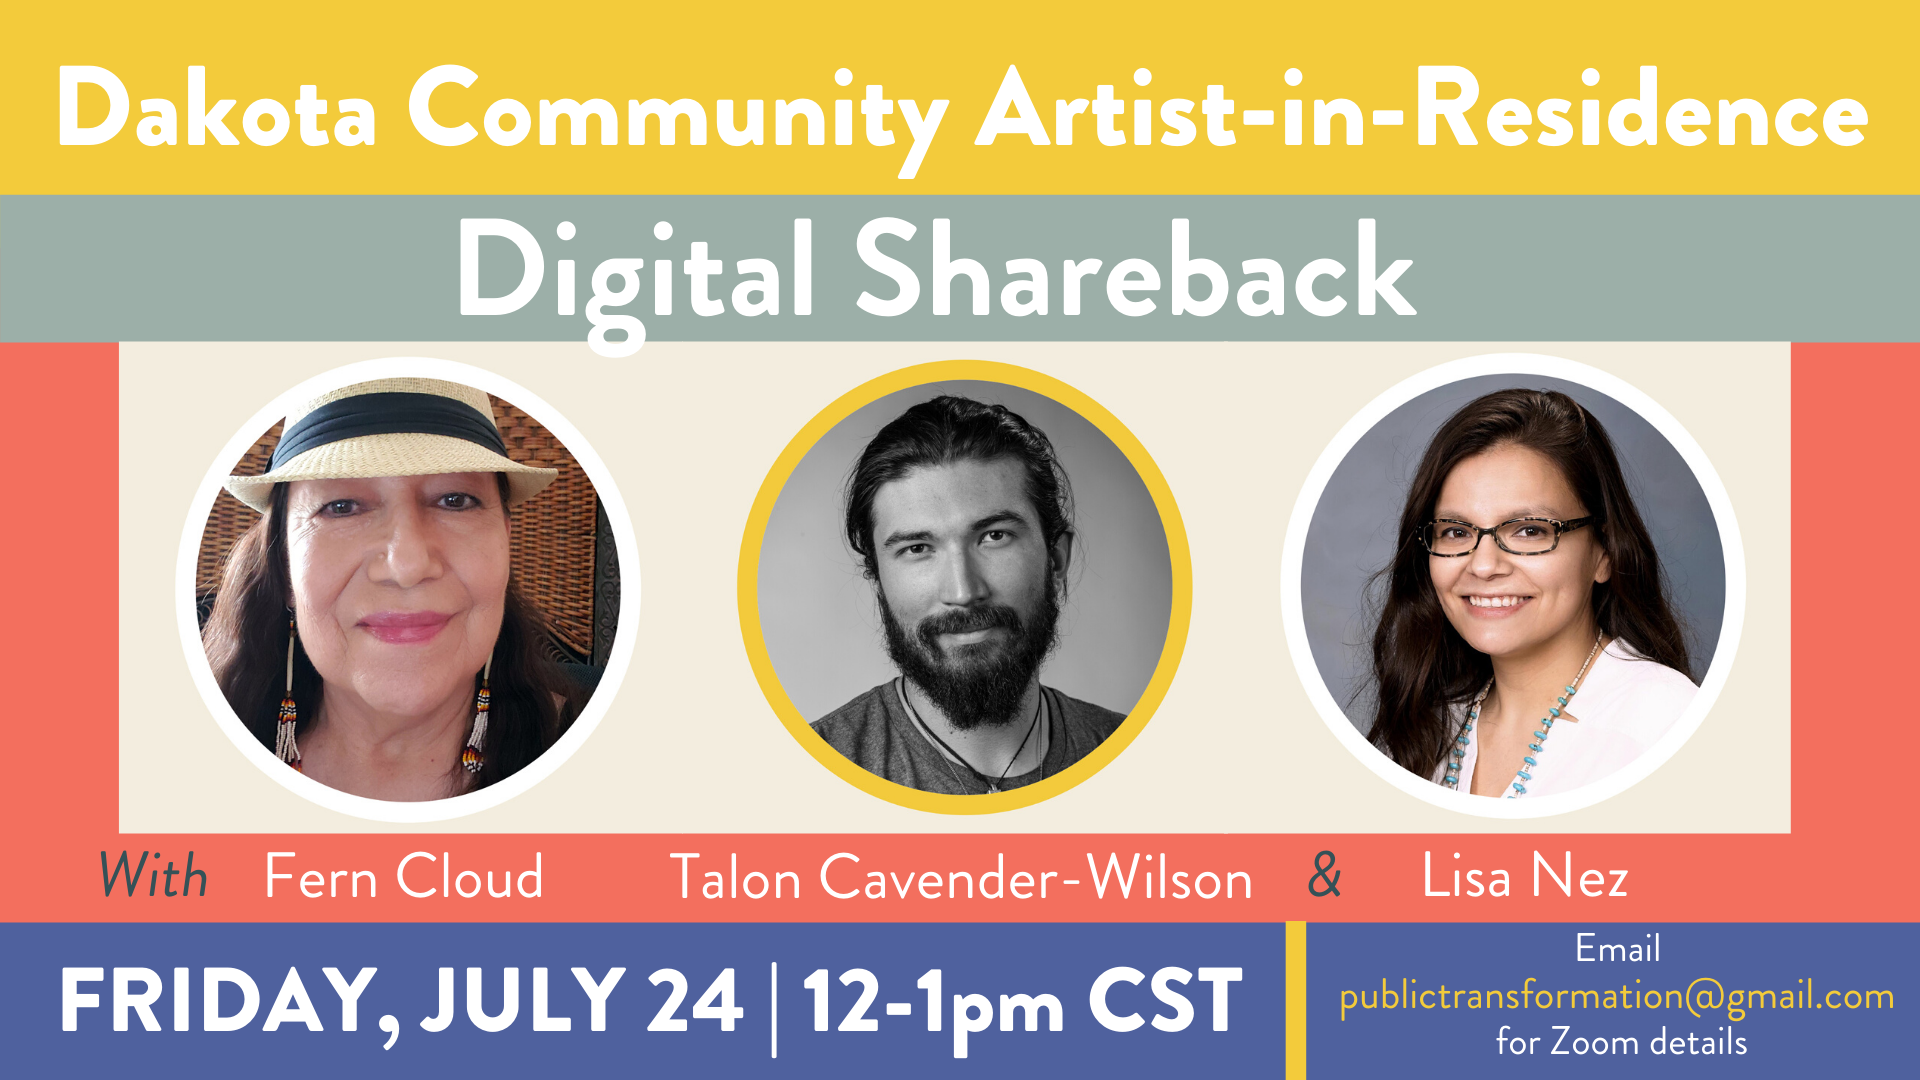 Dakota Community Artist-in-Residence Digital Shareback with Fern Cloud, Talon Cavender-Wilson & Lisa Nez. Friday, July 24, 12-1 pm, CST. email publictransformation@gmail.com for Zoom details. There is a photo of each guest speaker.